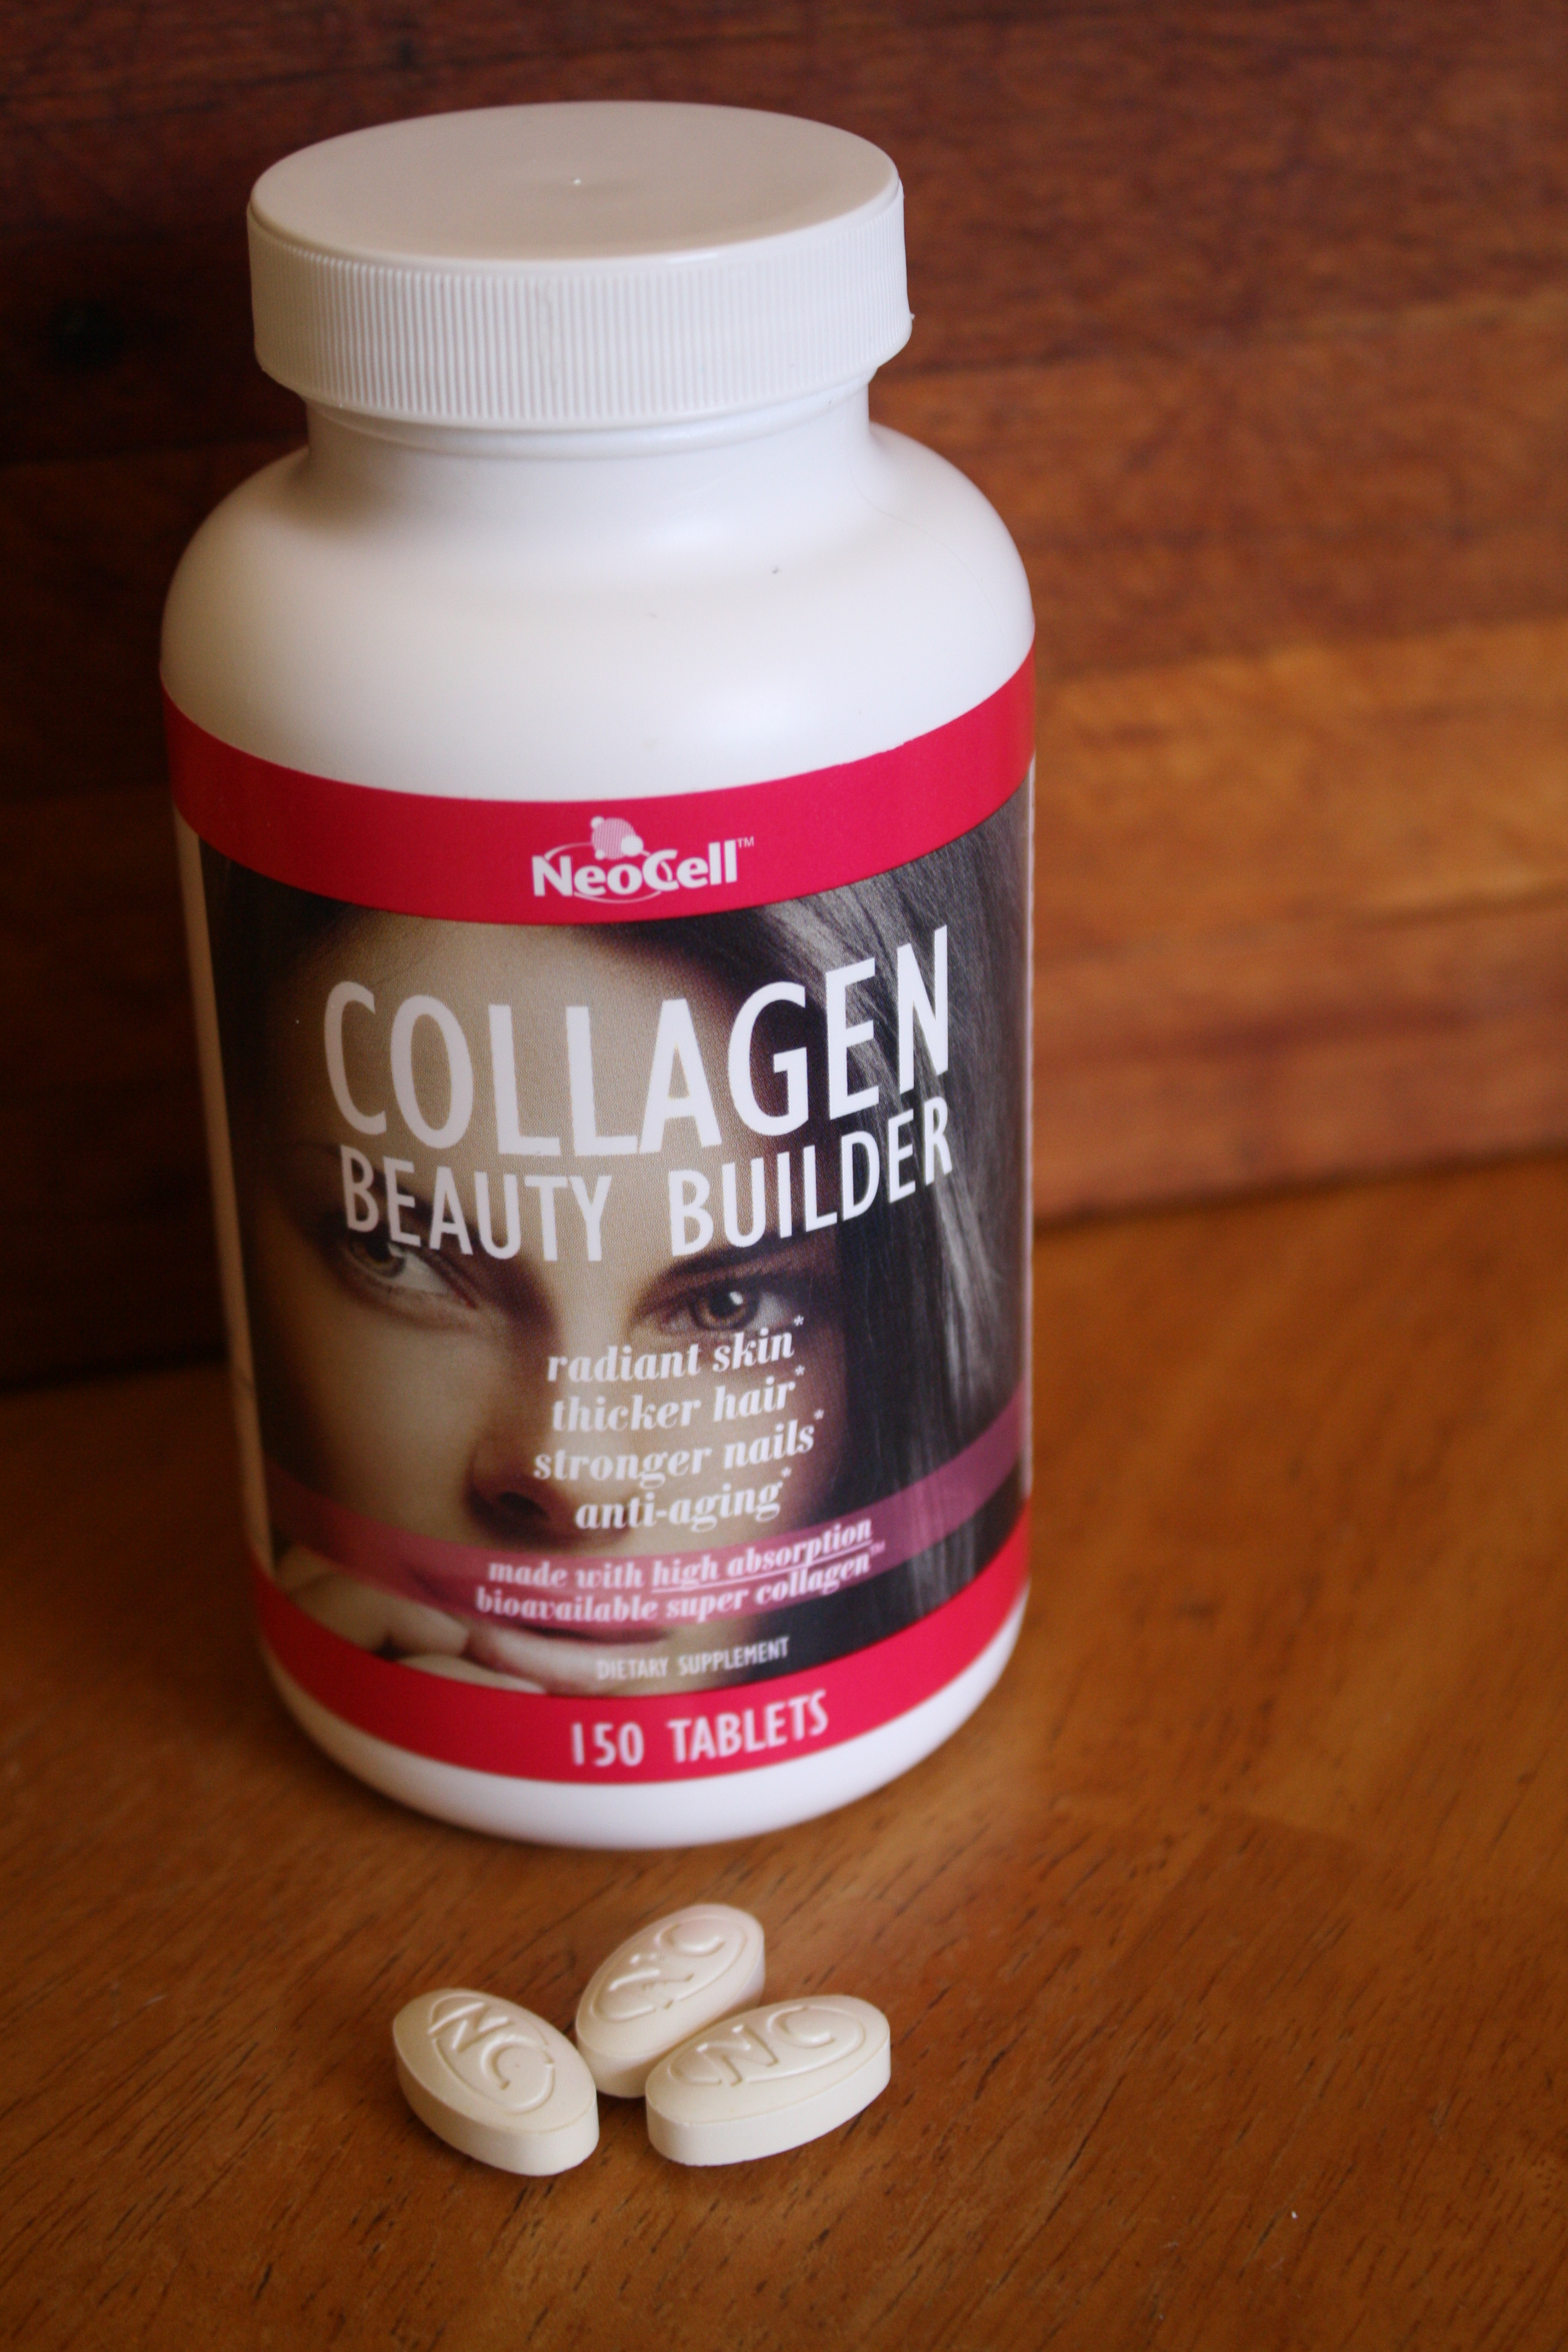 Neocell Collagen Supplements For Health And Beauty The More Super Builder